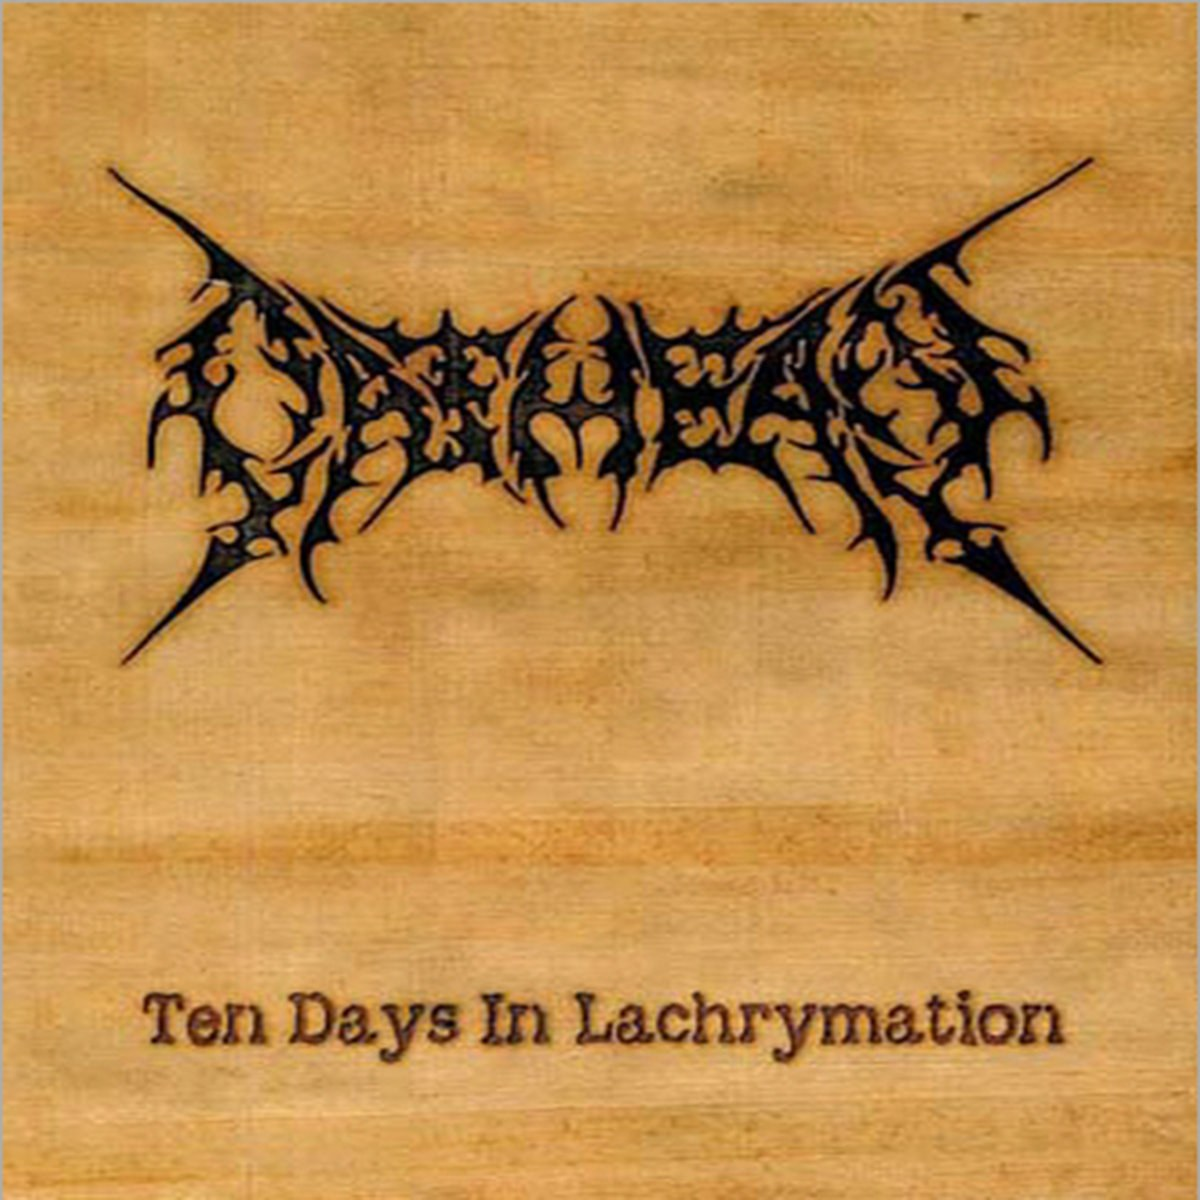 Review for Oathean - Ten Days in Lachrymation